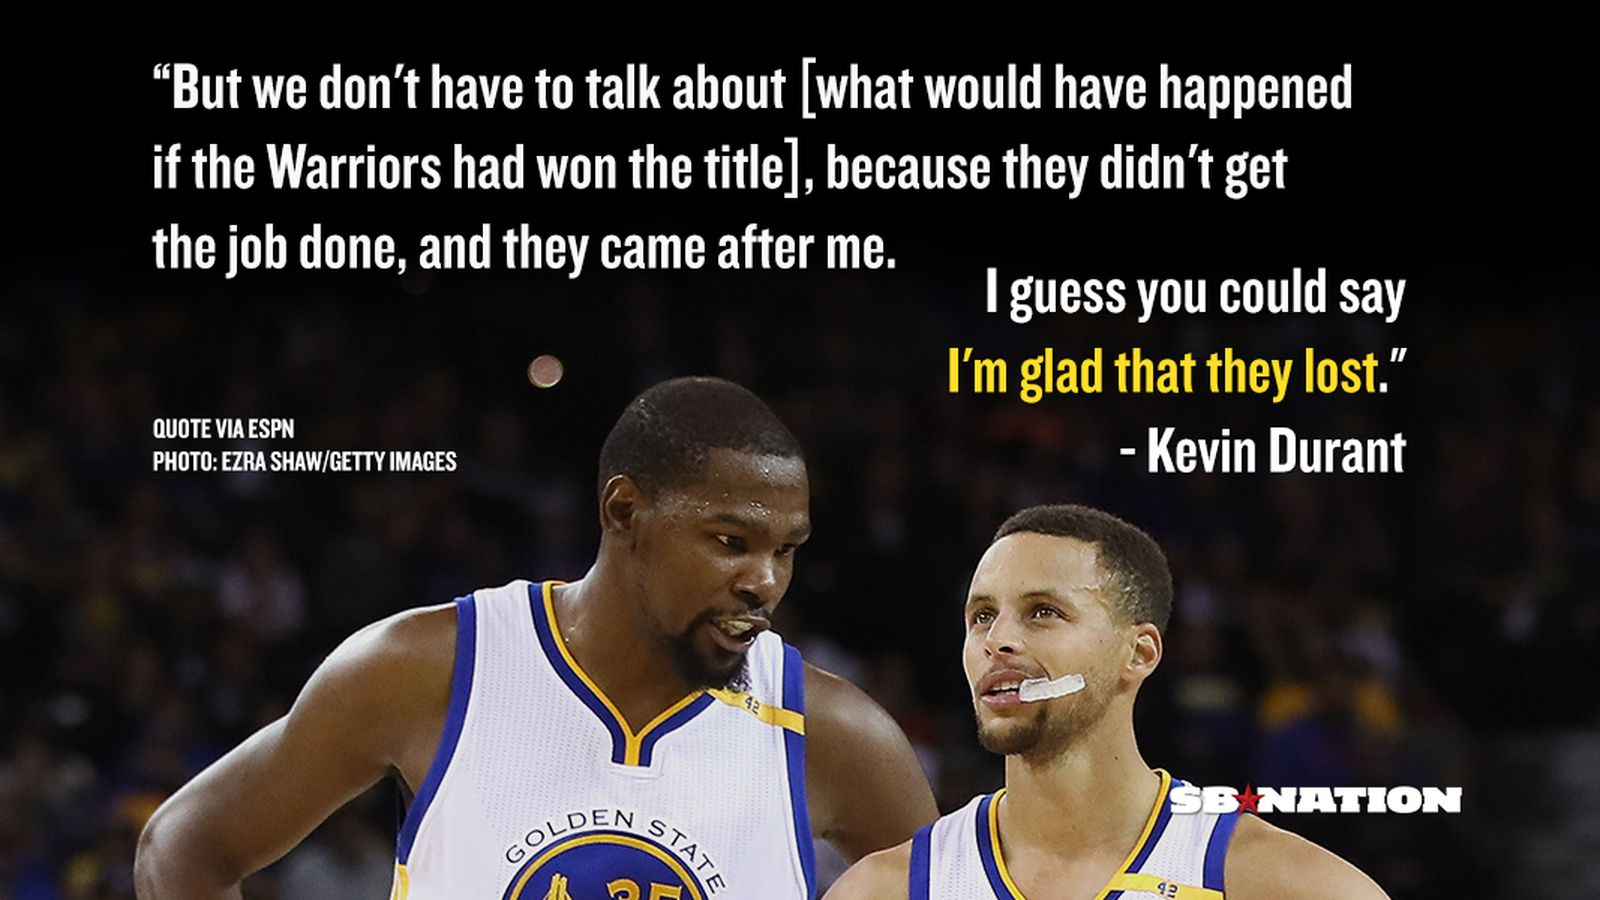 Kevin Durant says he's glad the Warriors blew a 3-1 lead in the NBA Finals - SBNation.com